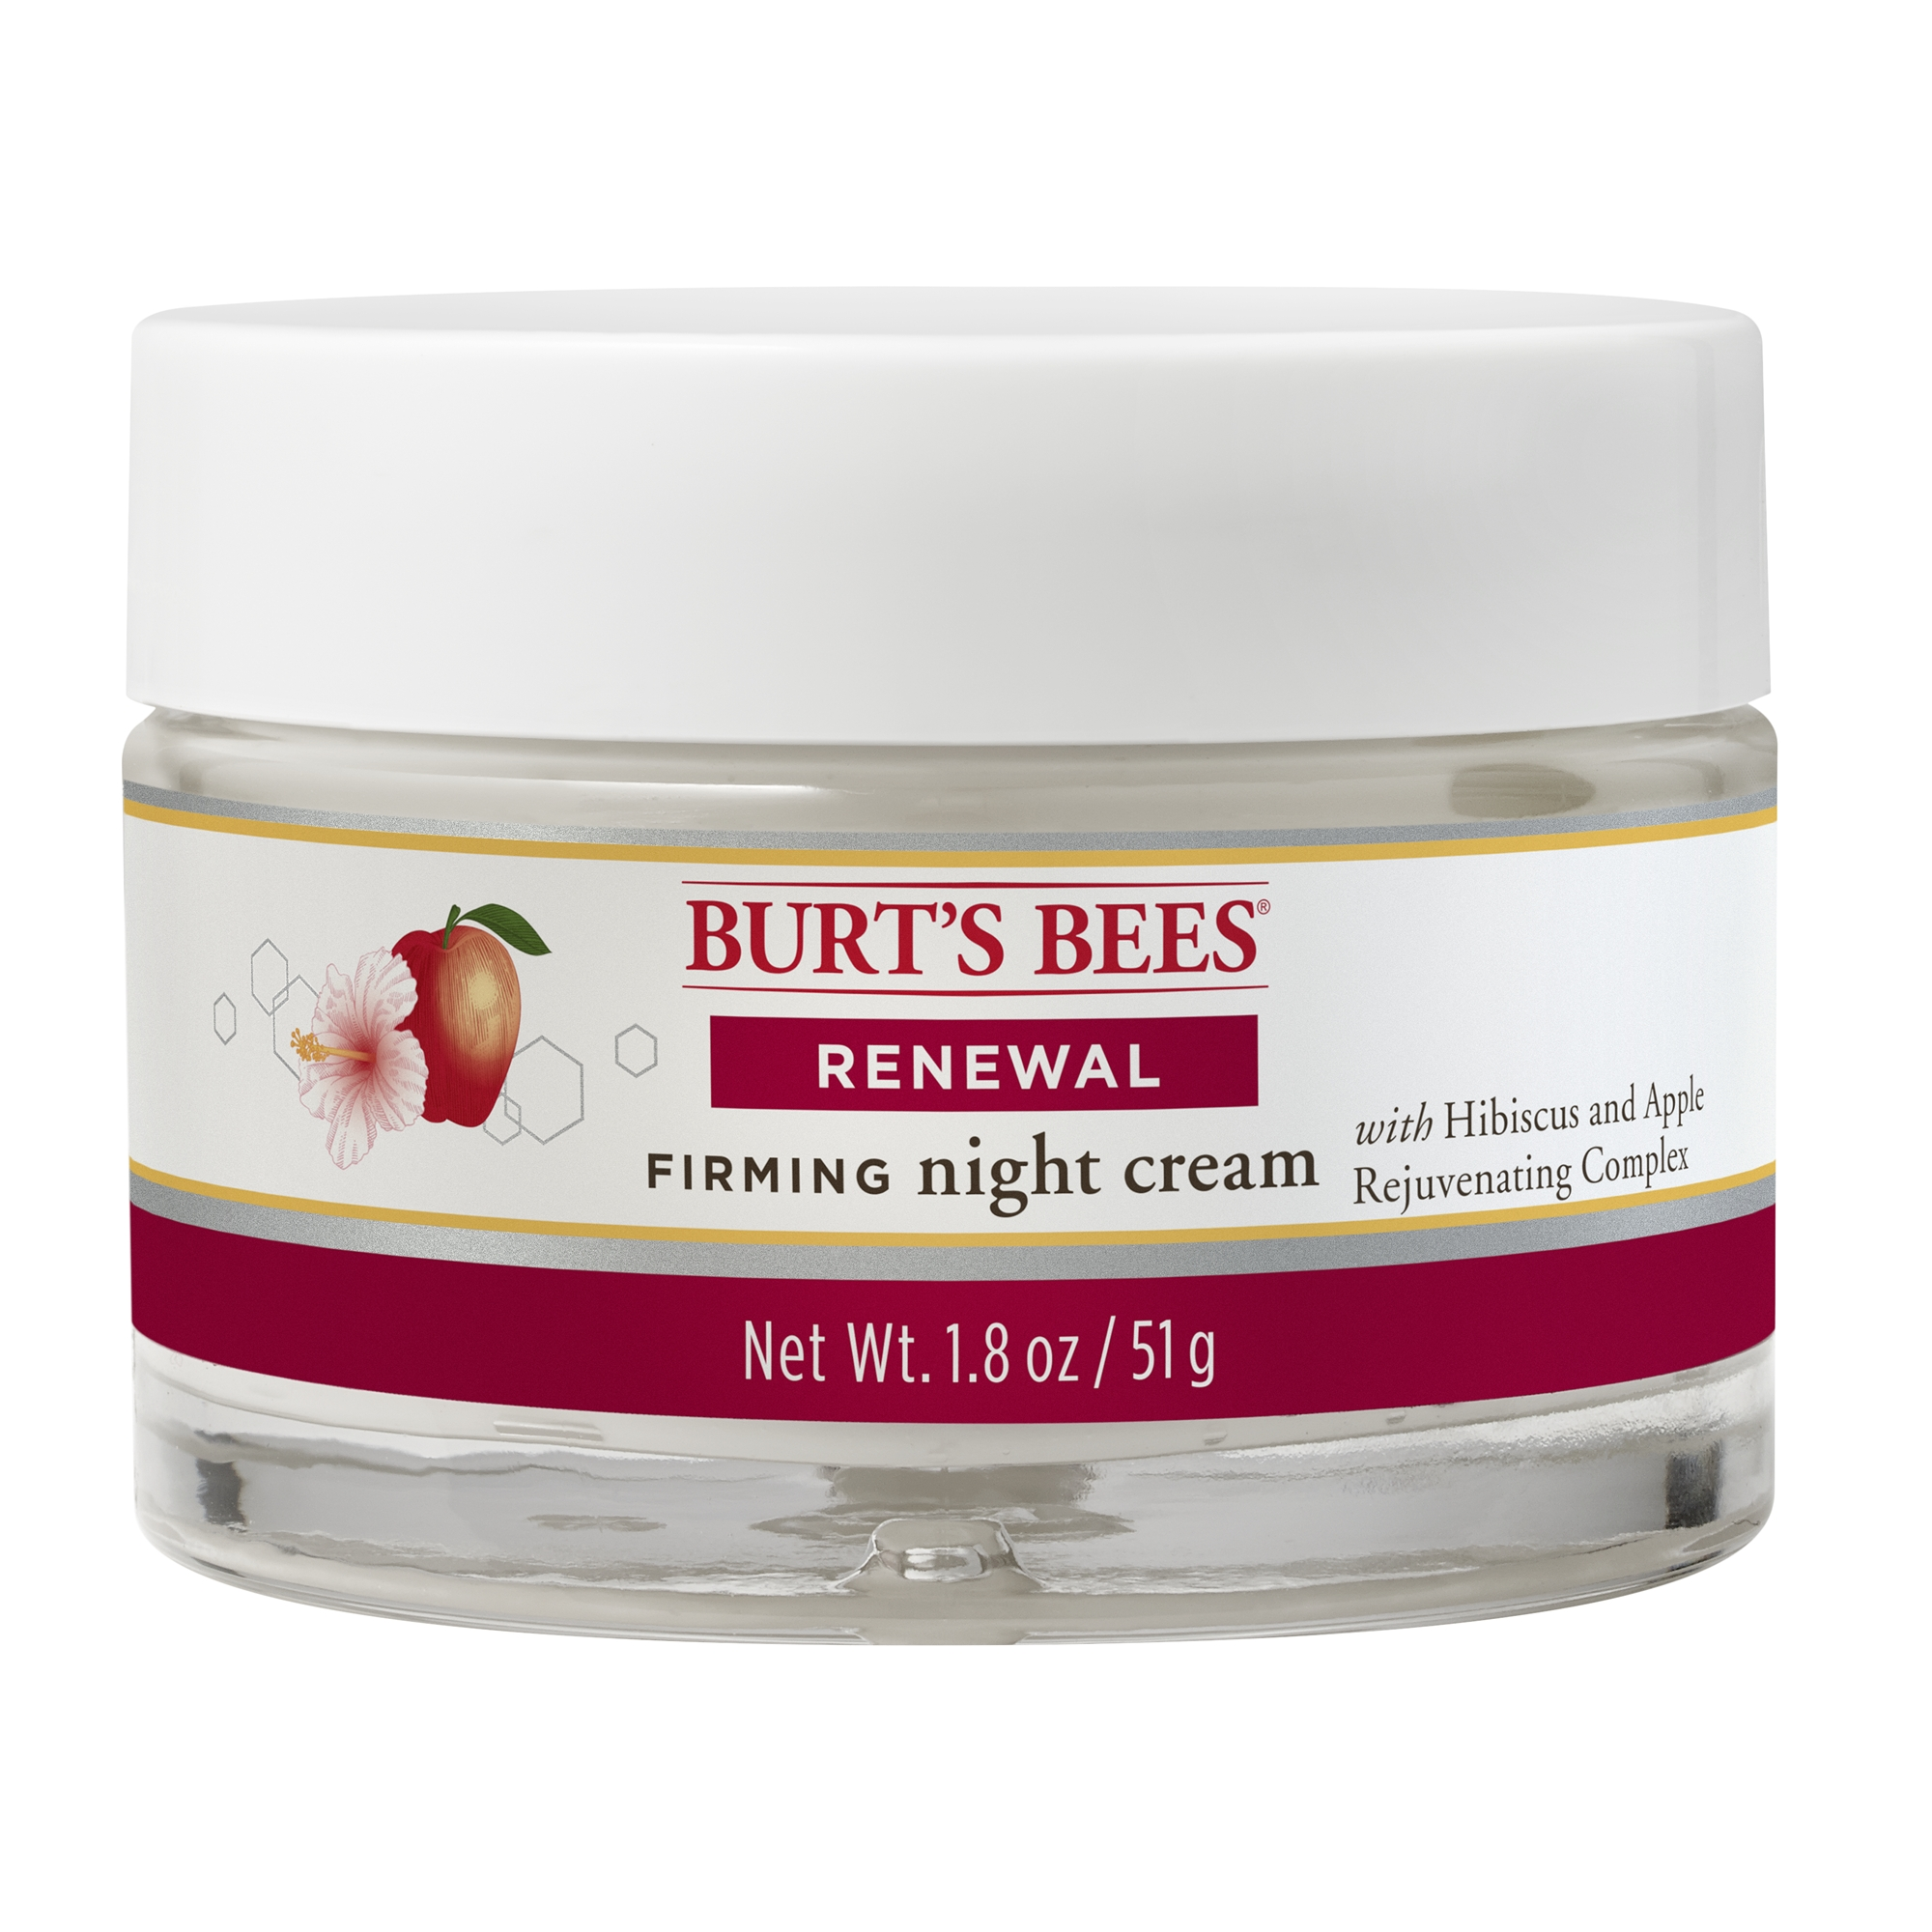 Best Bust Firming Creams - Burt's Bees Renewal Night Cream, Firming Night Cream Review